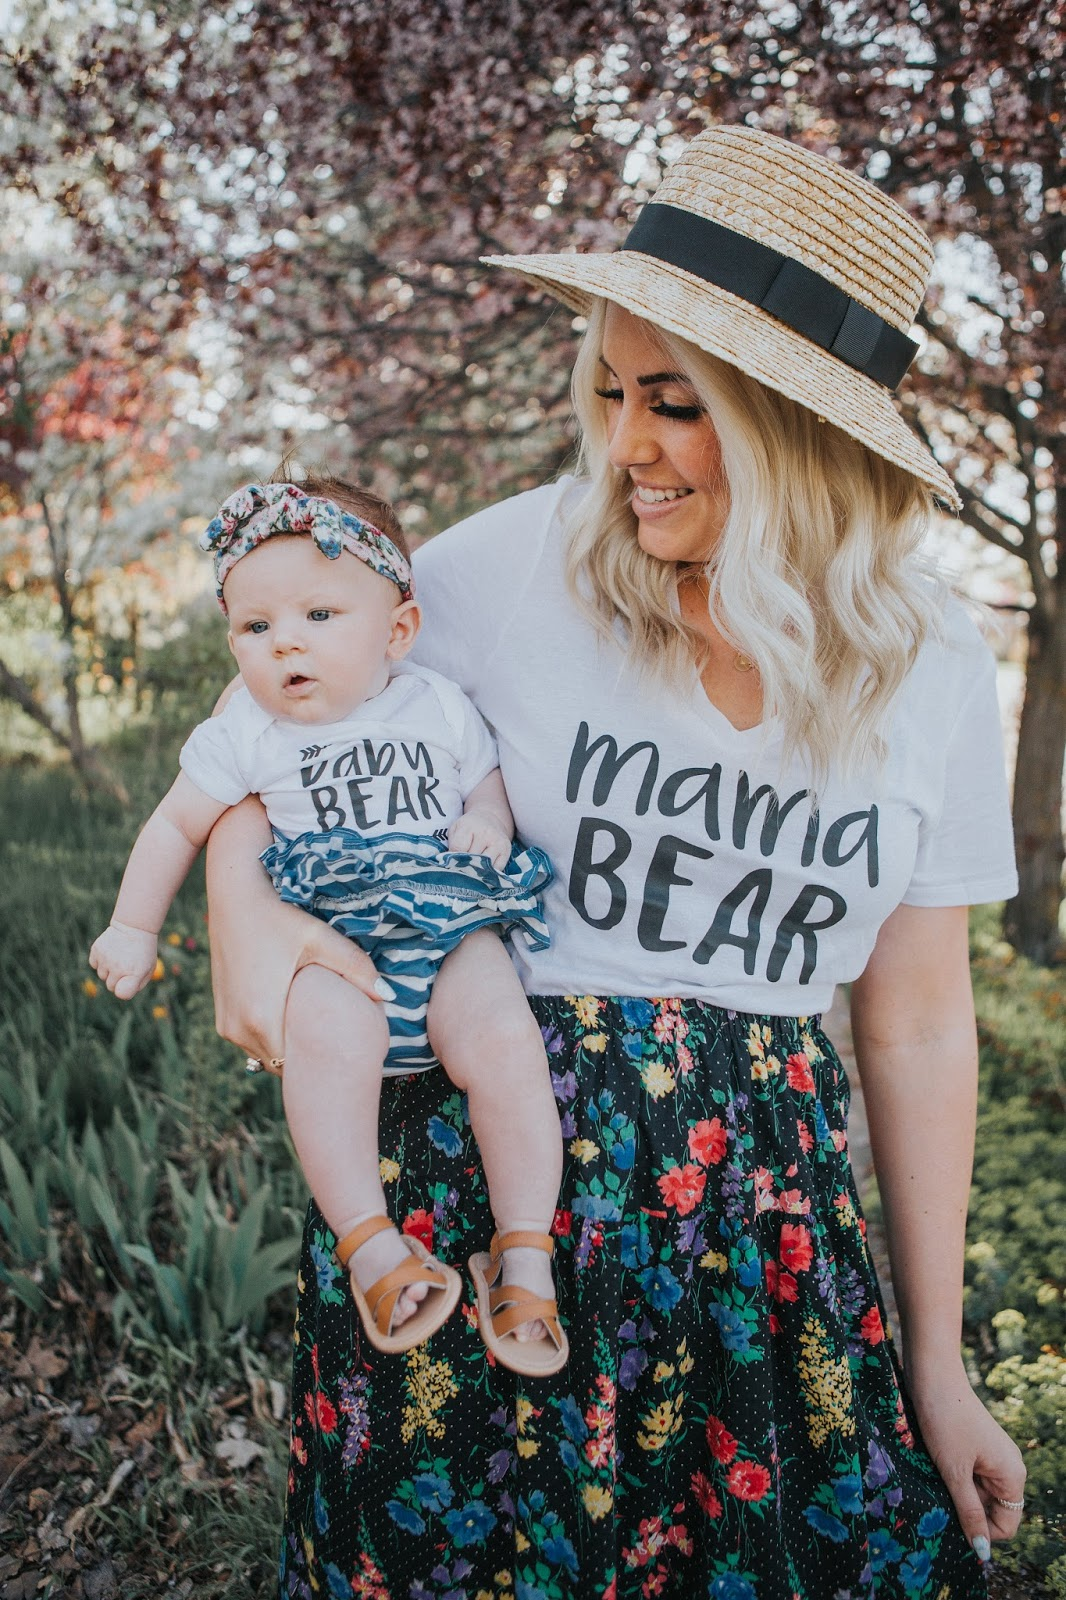 Mama Bear and Baby Bear, Mommy and Me Outfits, Jane.com